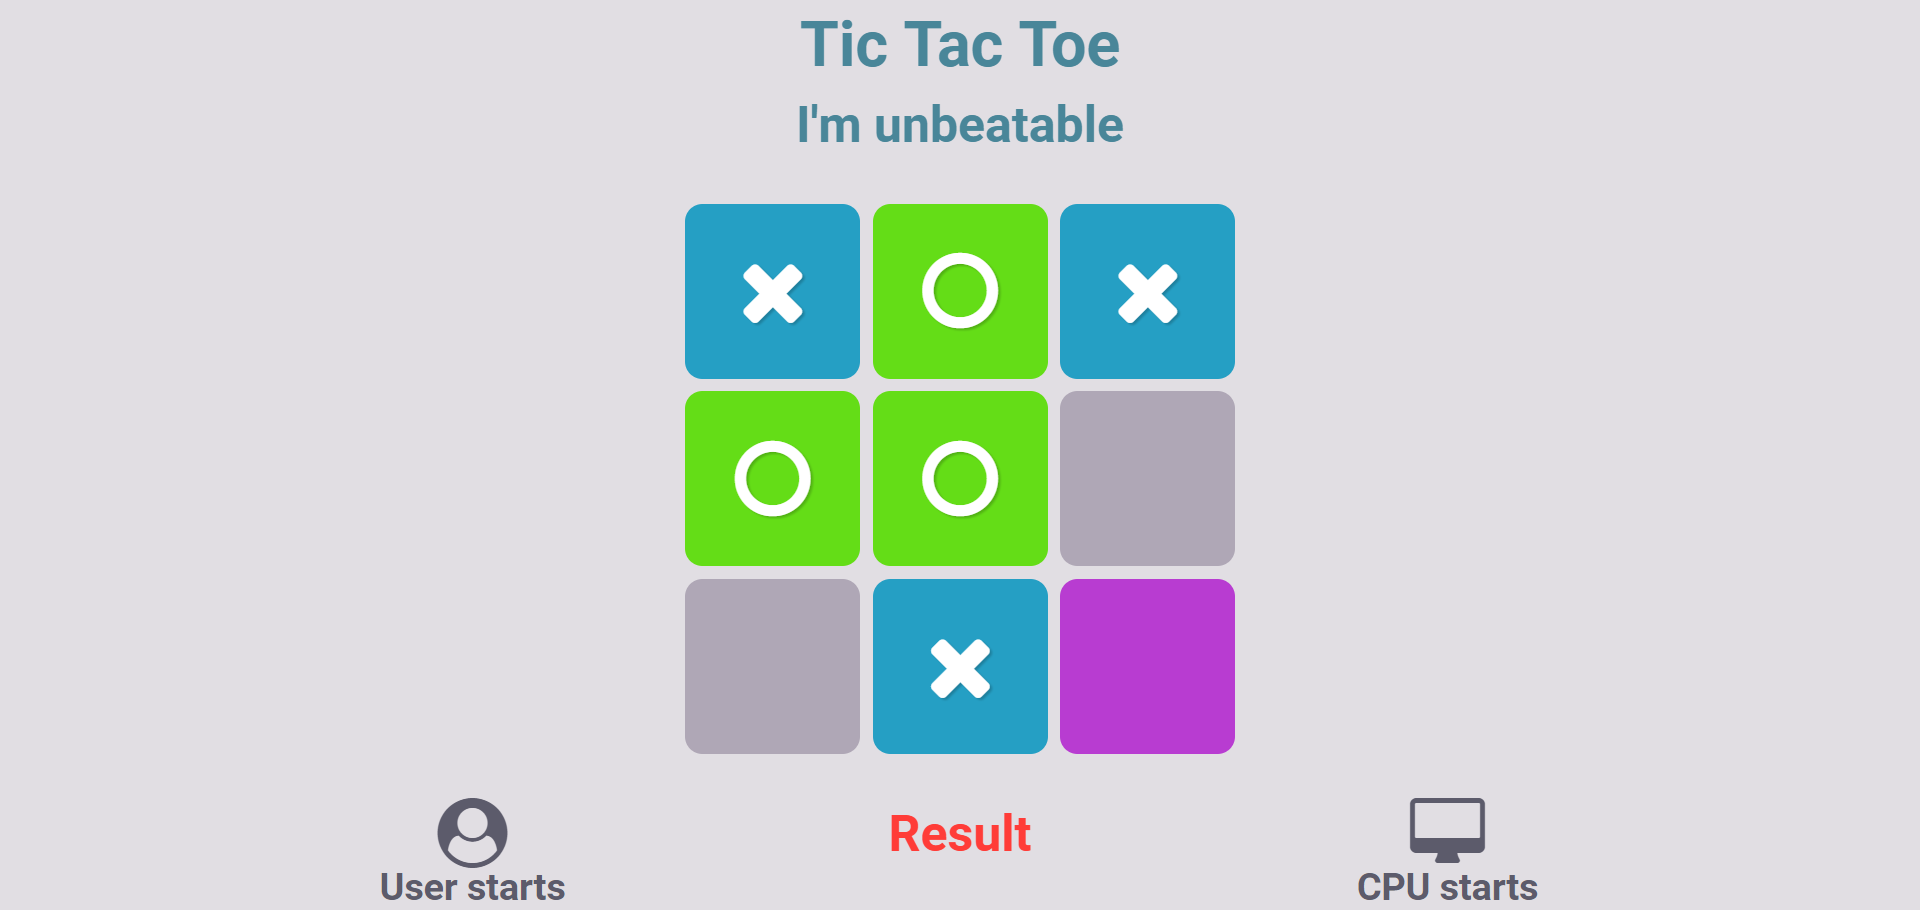 GitHub - AK-007/Tic-Tac-Toe: A JavaScript implementation of